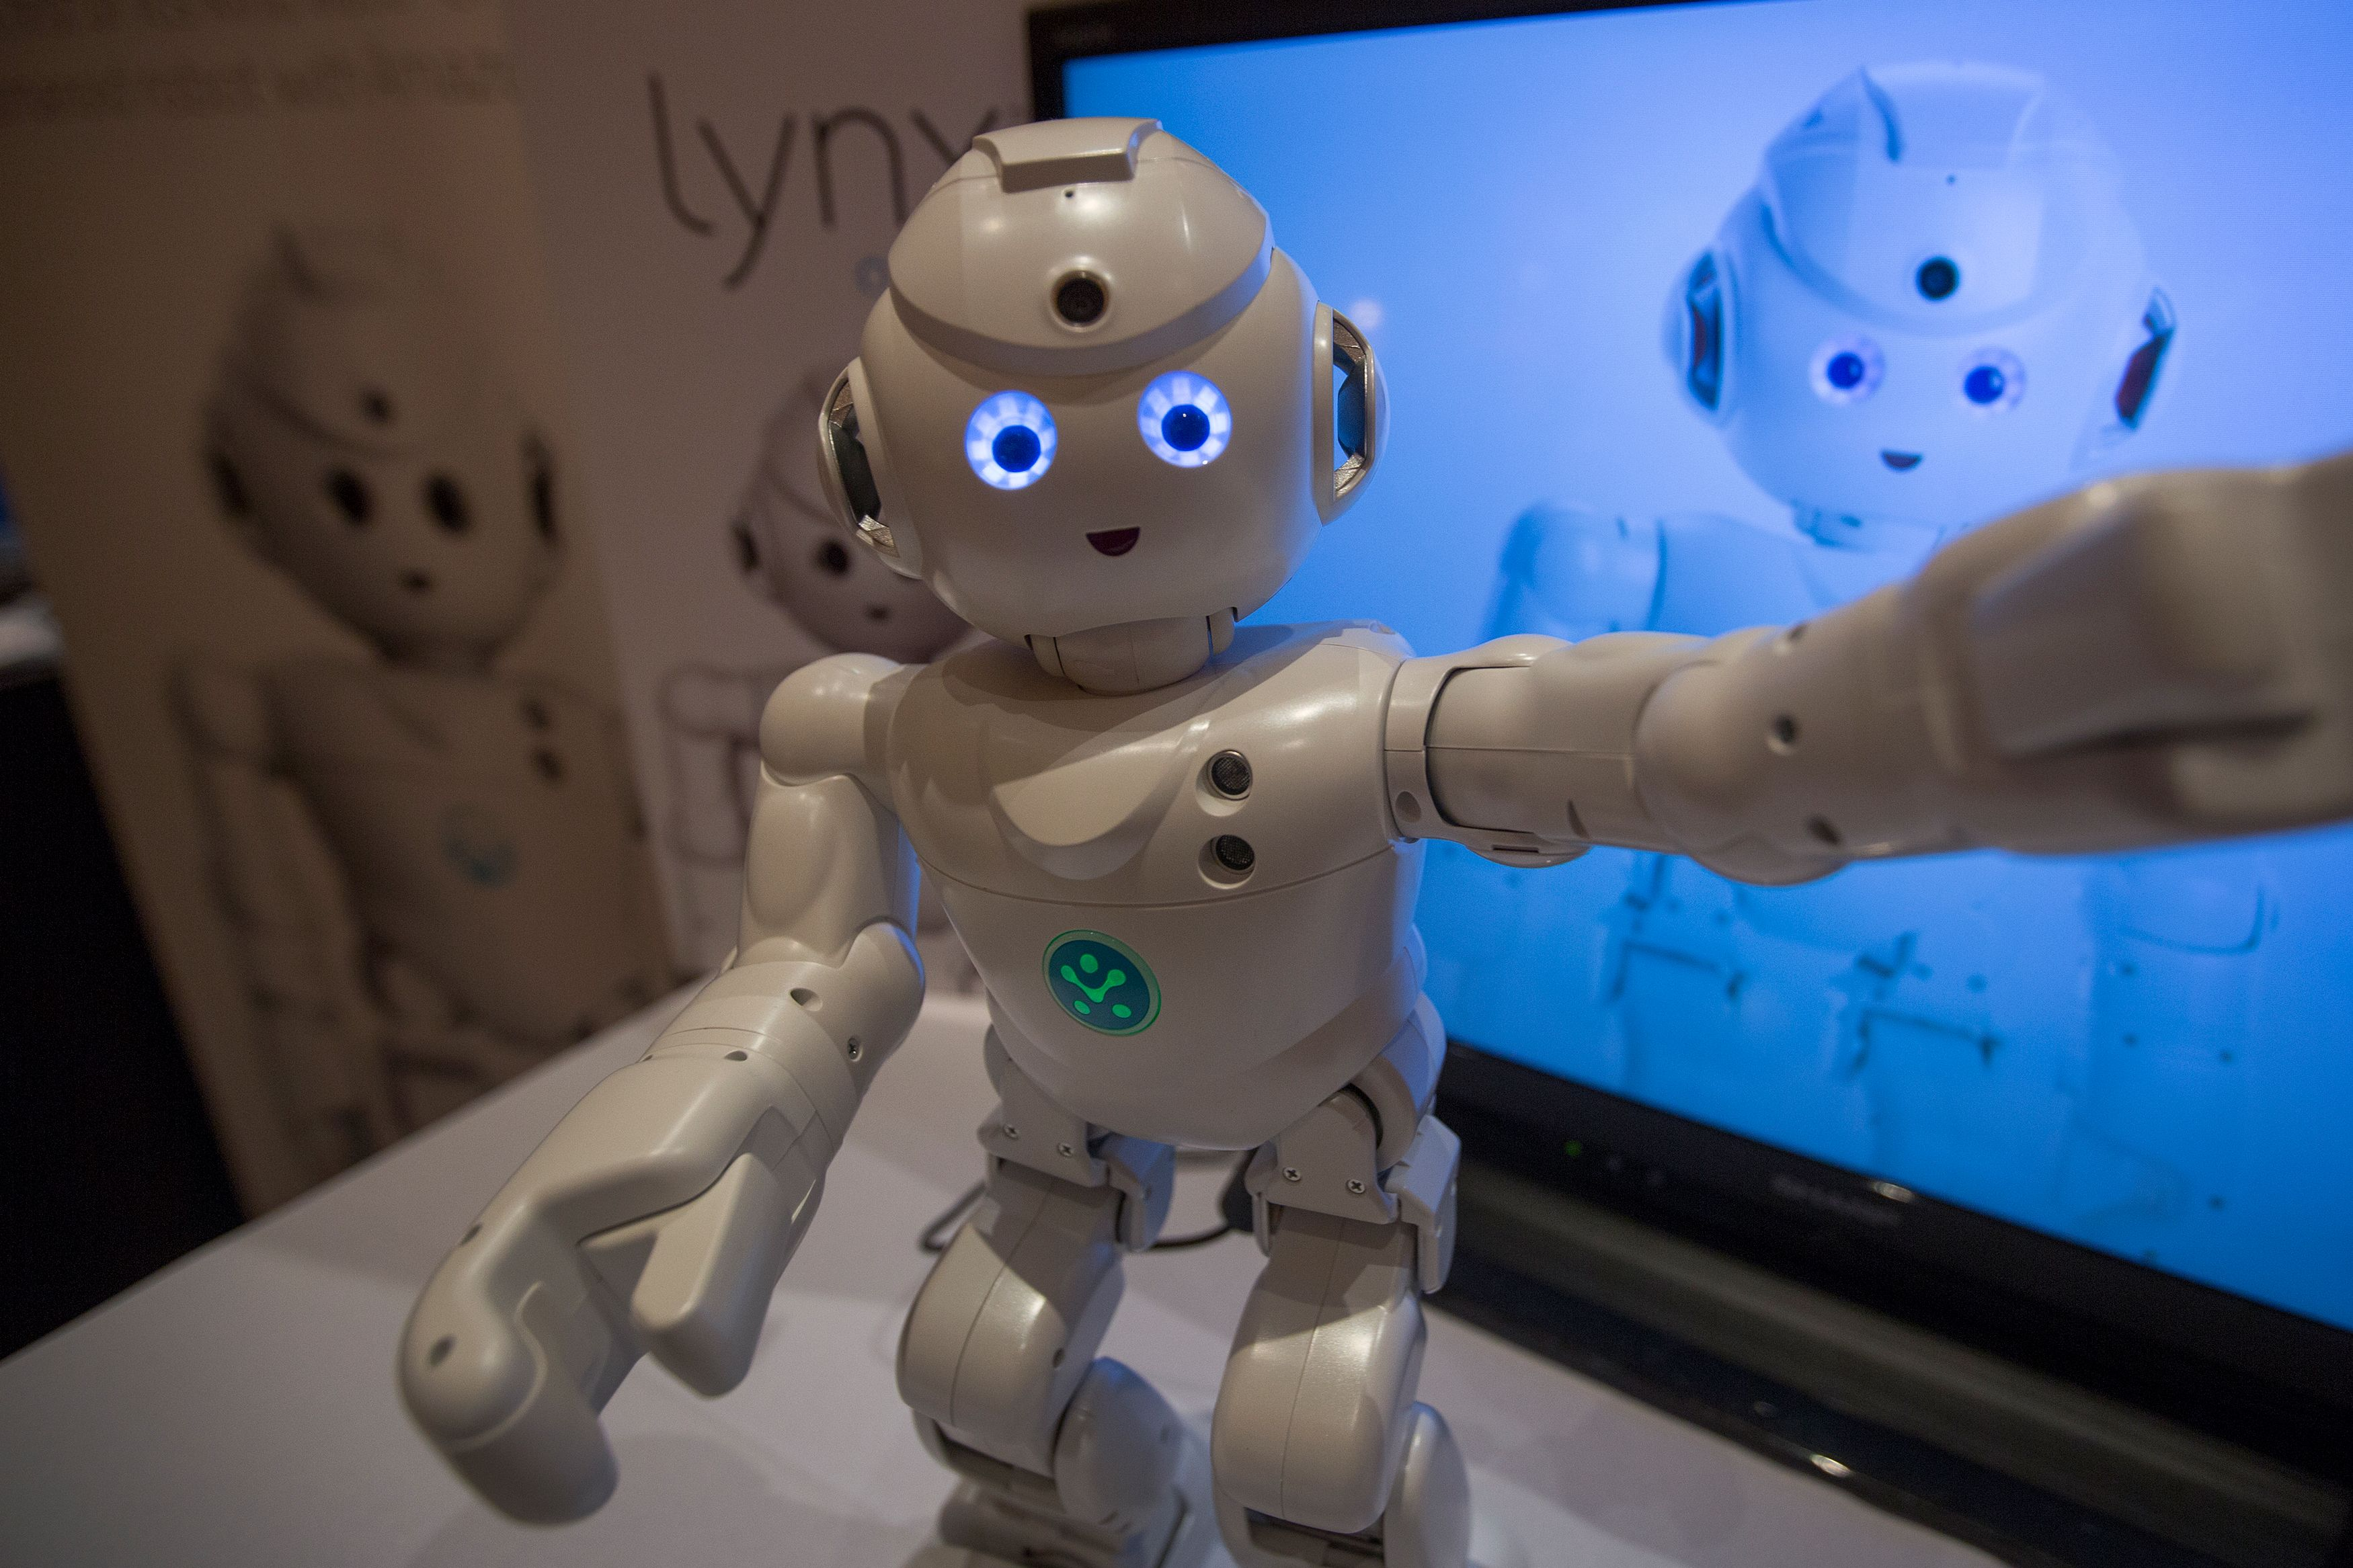 A Lynx robot toy by UBTECH Robotics dances at ShowStoppers during the 2017 Consumer Electronic Show (CES) in Las Vegas, Nevada on January 5, 2017.